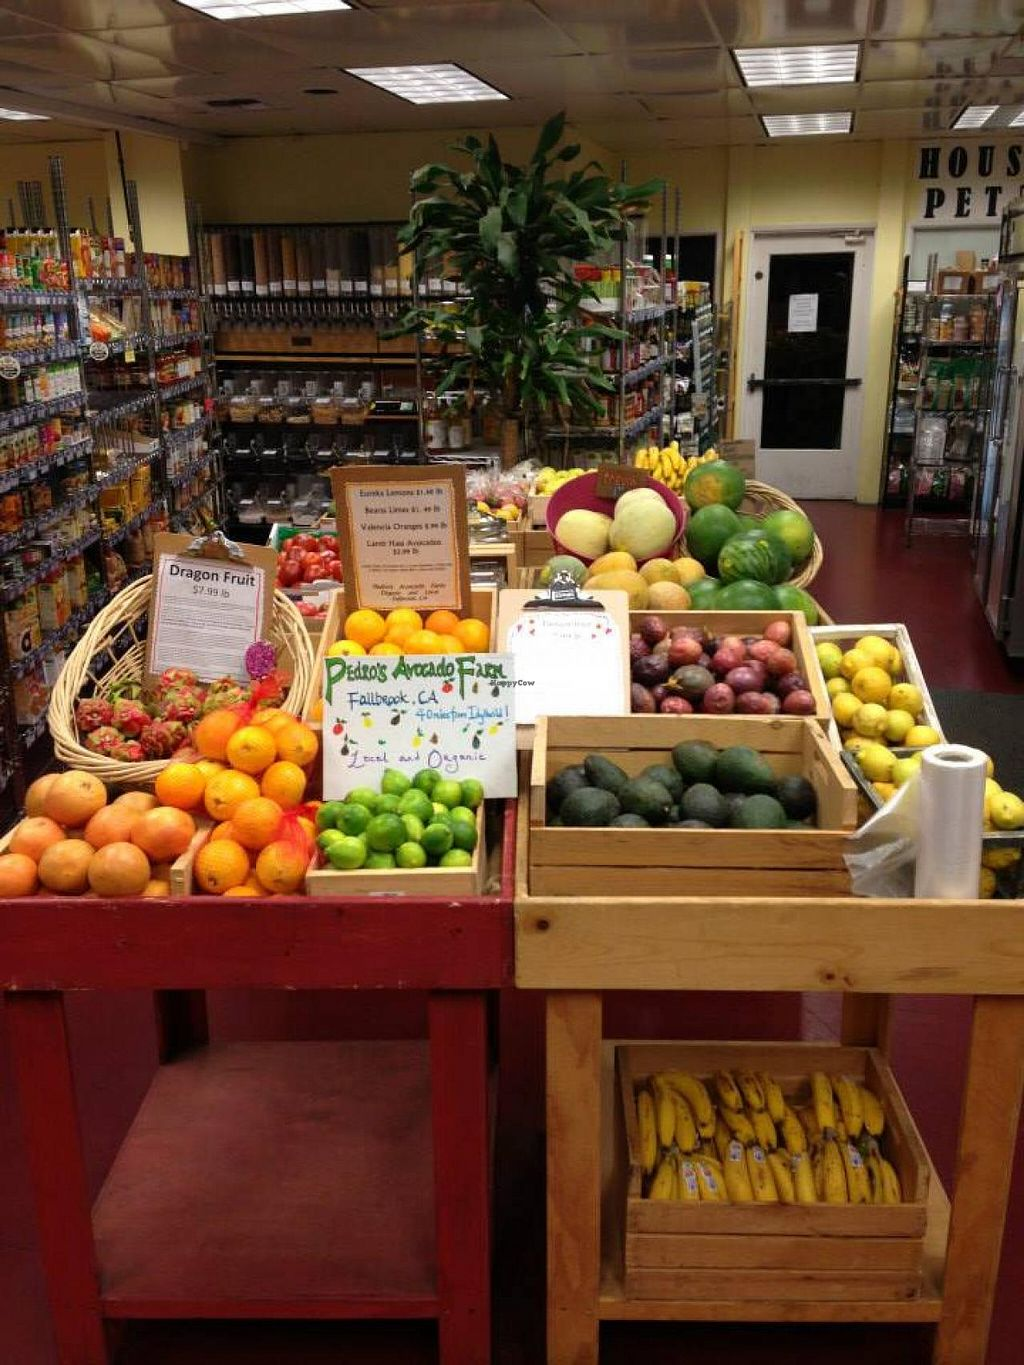 """Photo of CLOSED: Sky Island Natural Foods  by <a href=""""/members/profile/Sky%20Island"""">Sky Island</a> <br/>Organic, locally grown produce available year round <br/> February 3, 2014  - <a href='/contact/abuse/image/45116/63682'>Report</a>"""